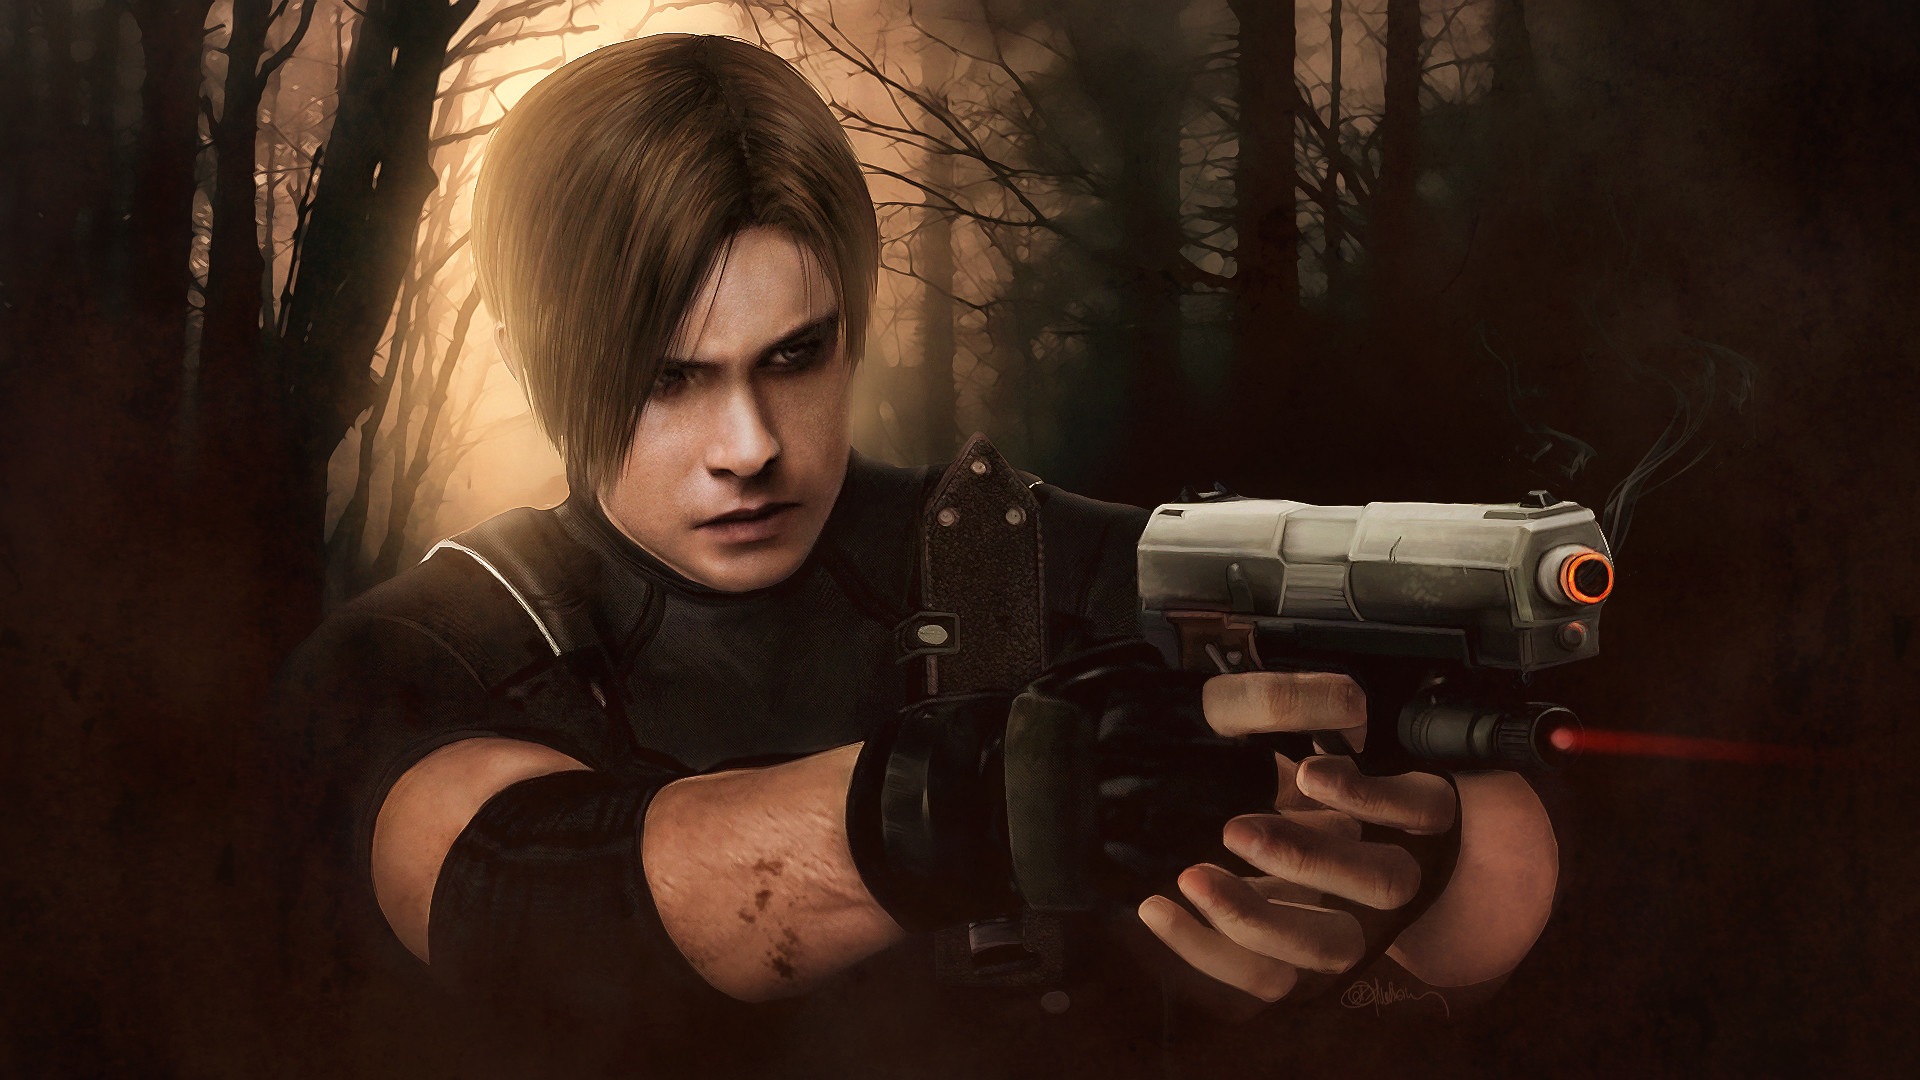 Leon Kennedy Wallpaper Ps3 By Jillvalentinexbsaa On Deviantart: Resident Evil 4 Movie Wallpaper (63+ Images